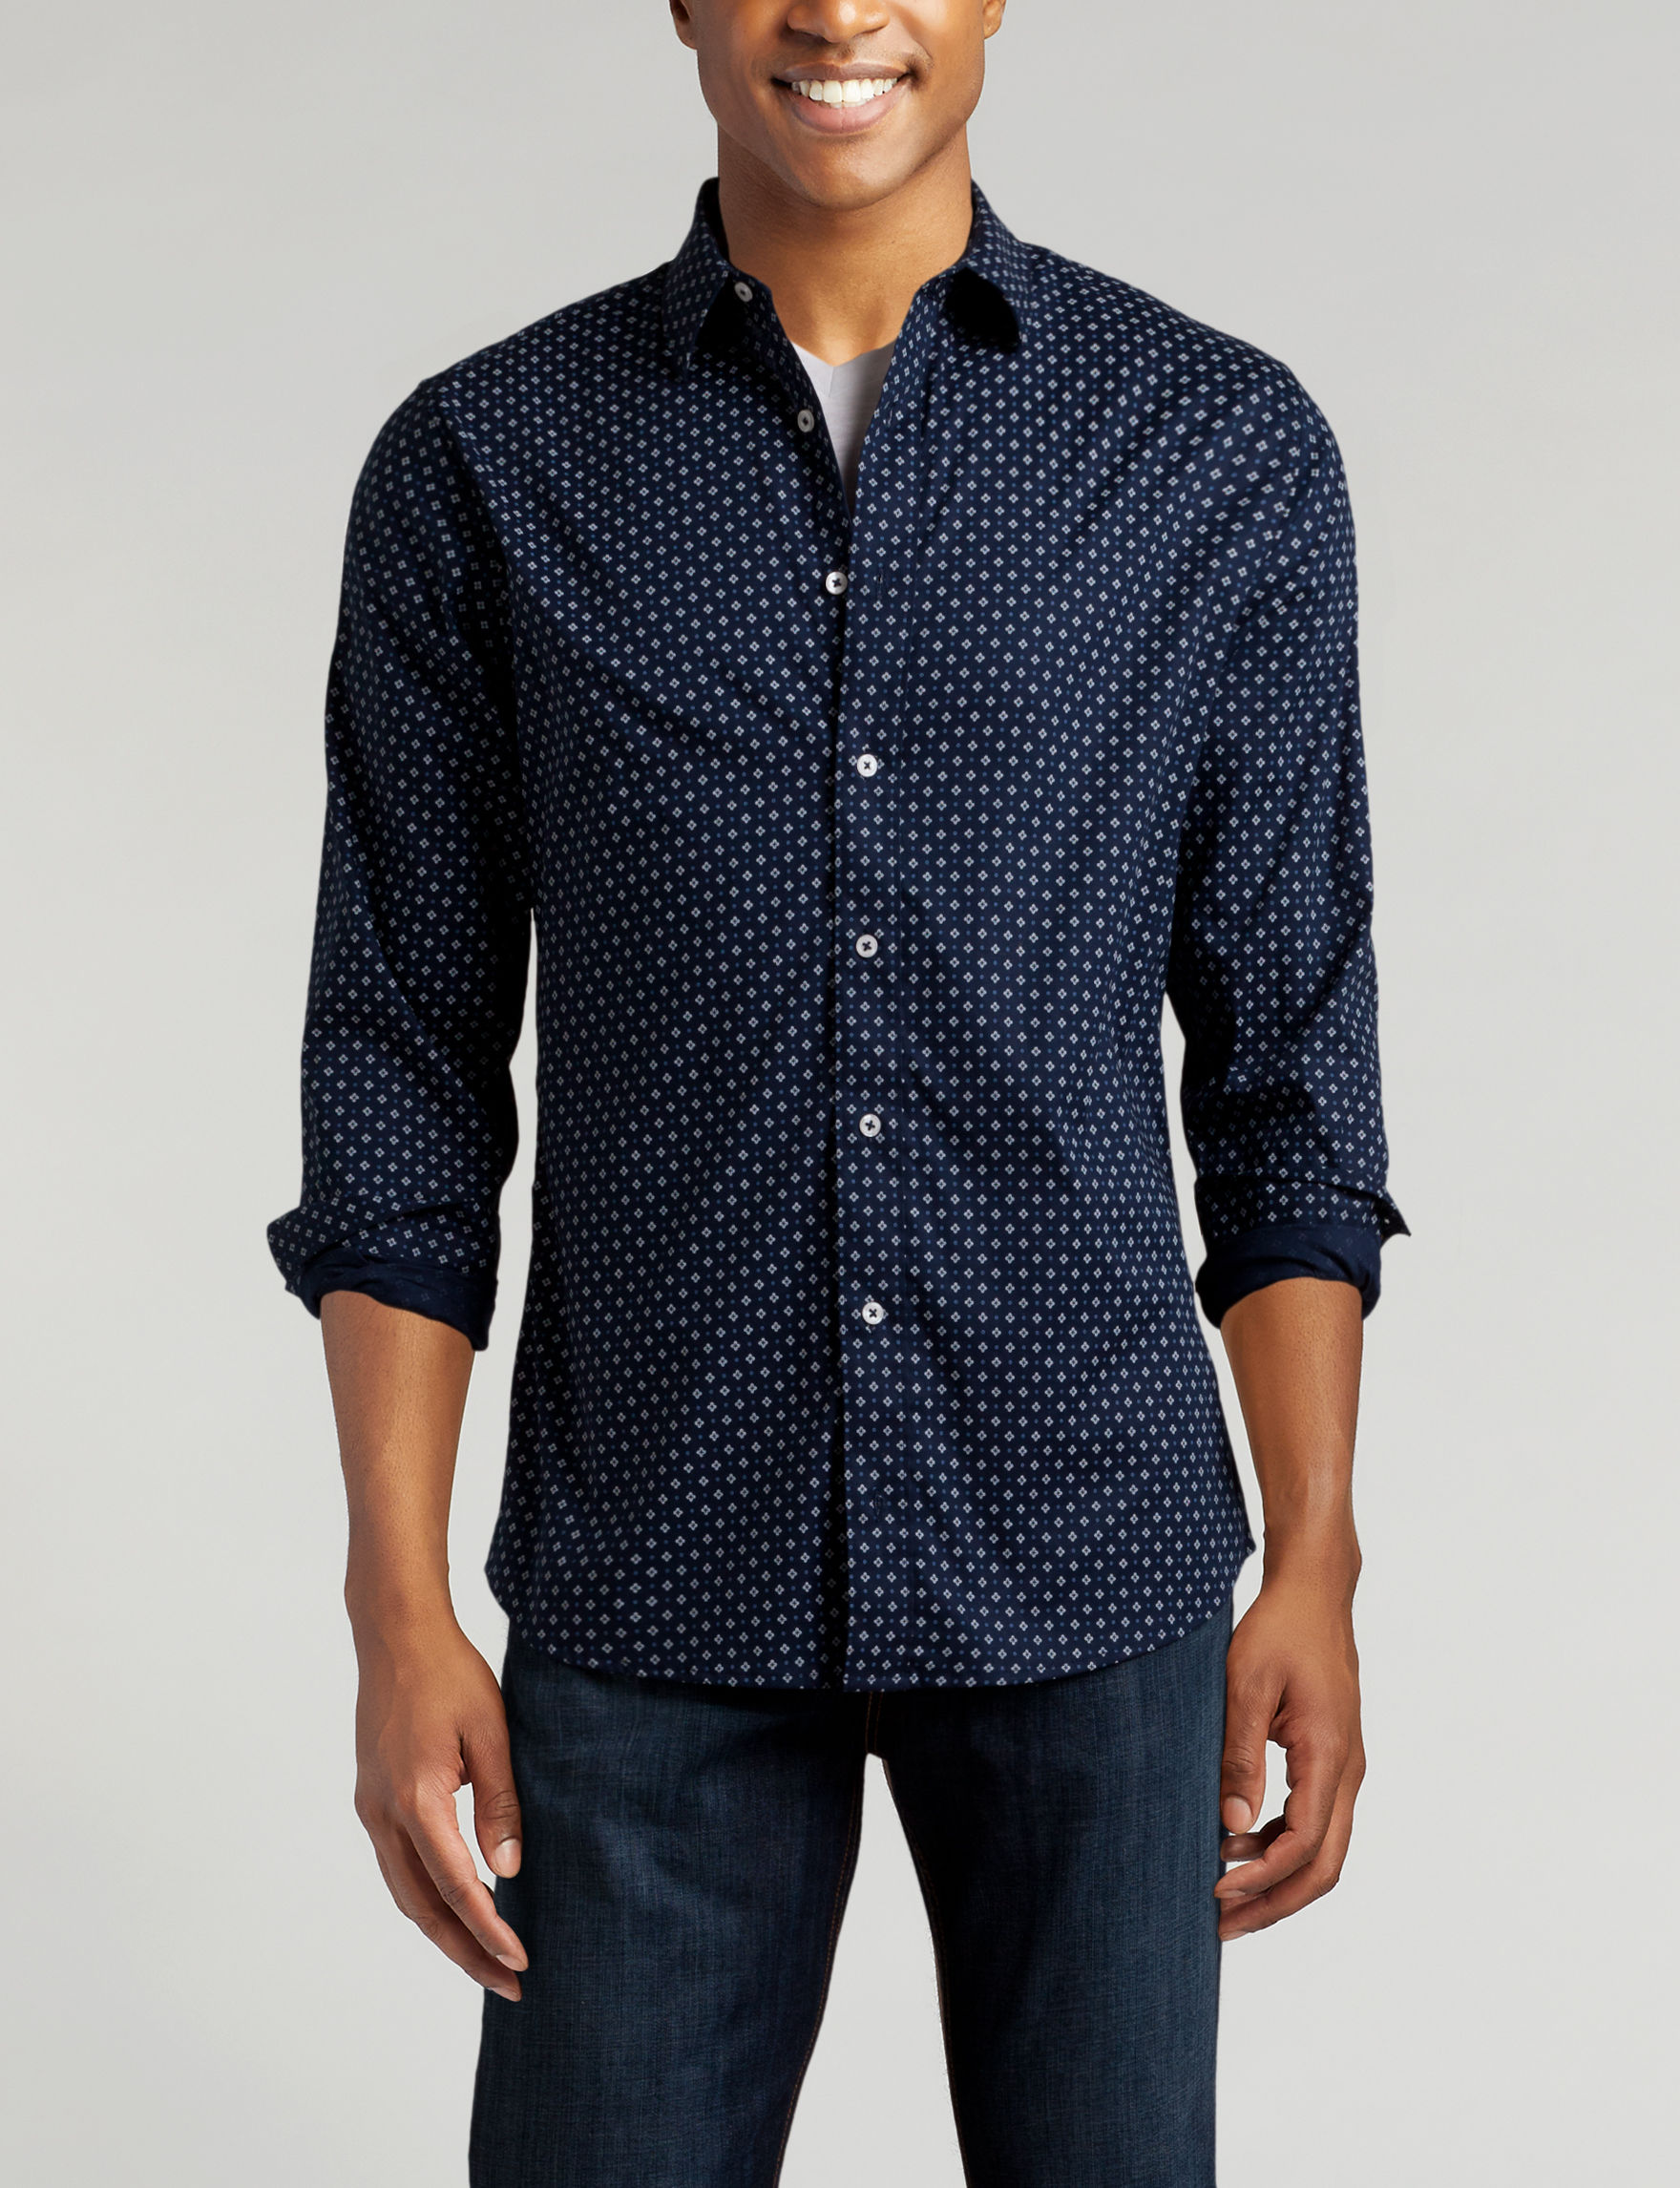 Signature Studio Navy / White Casual Button Down Shirts